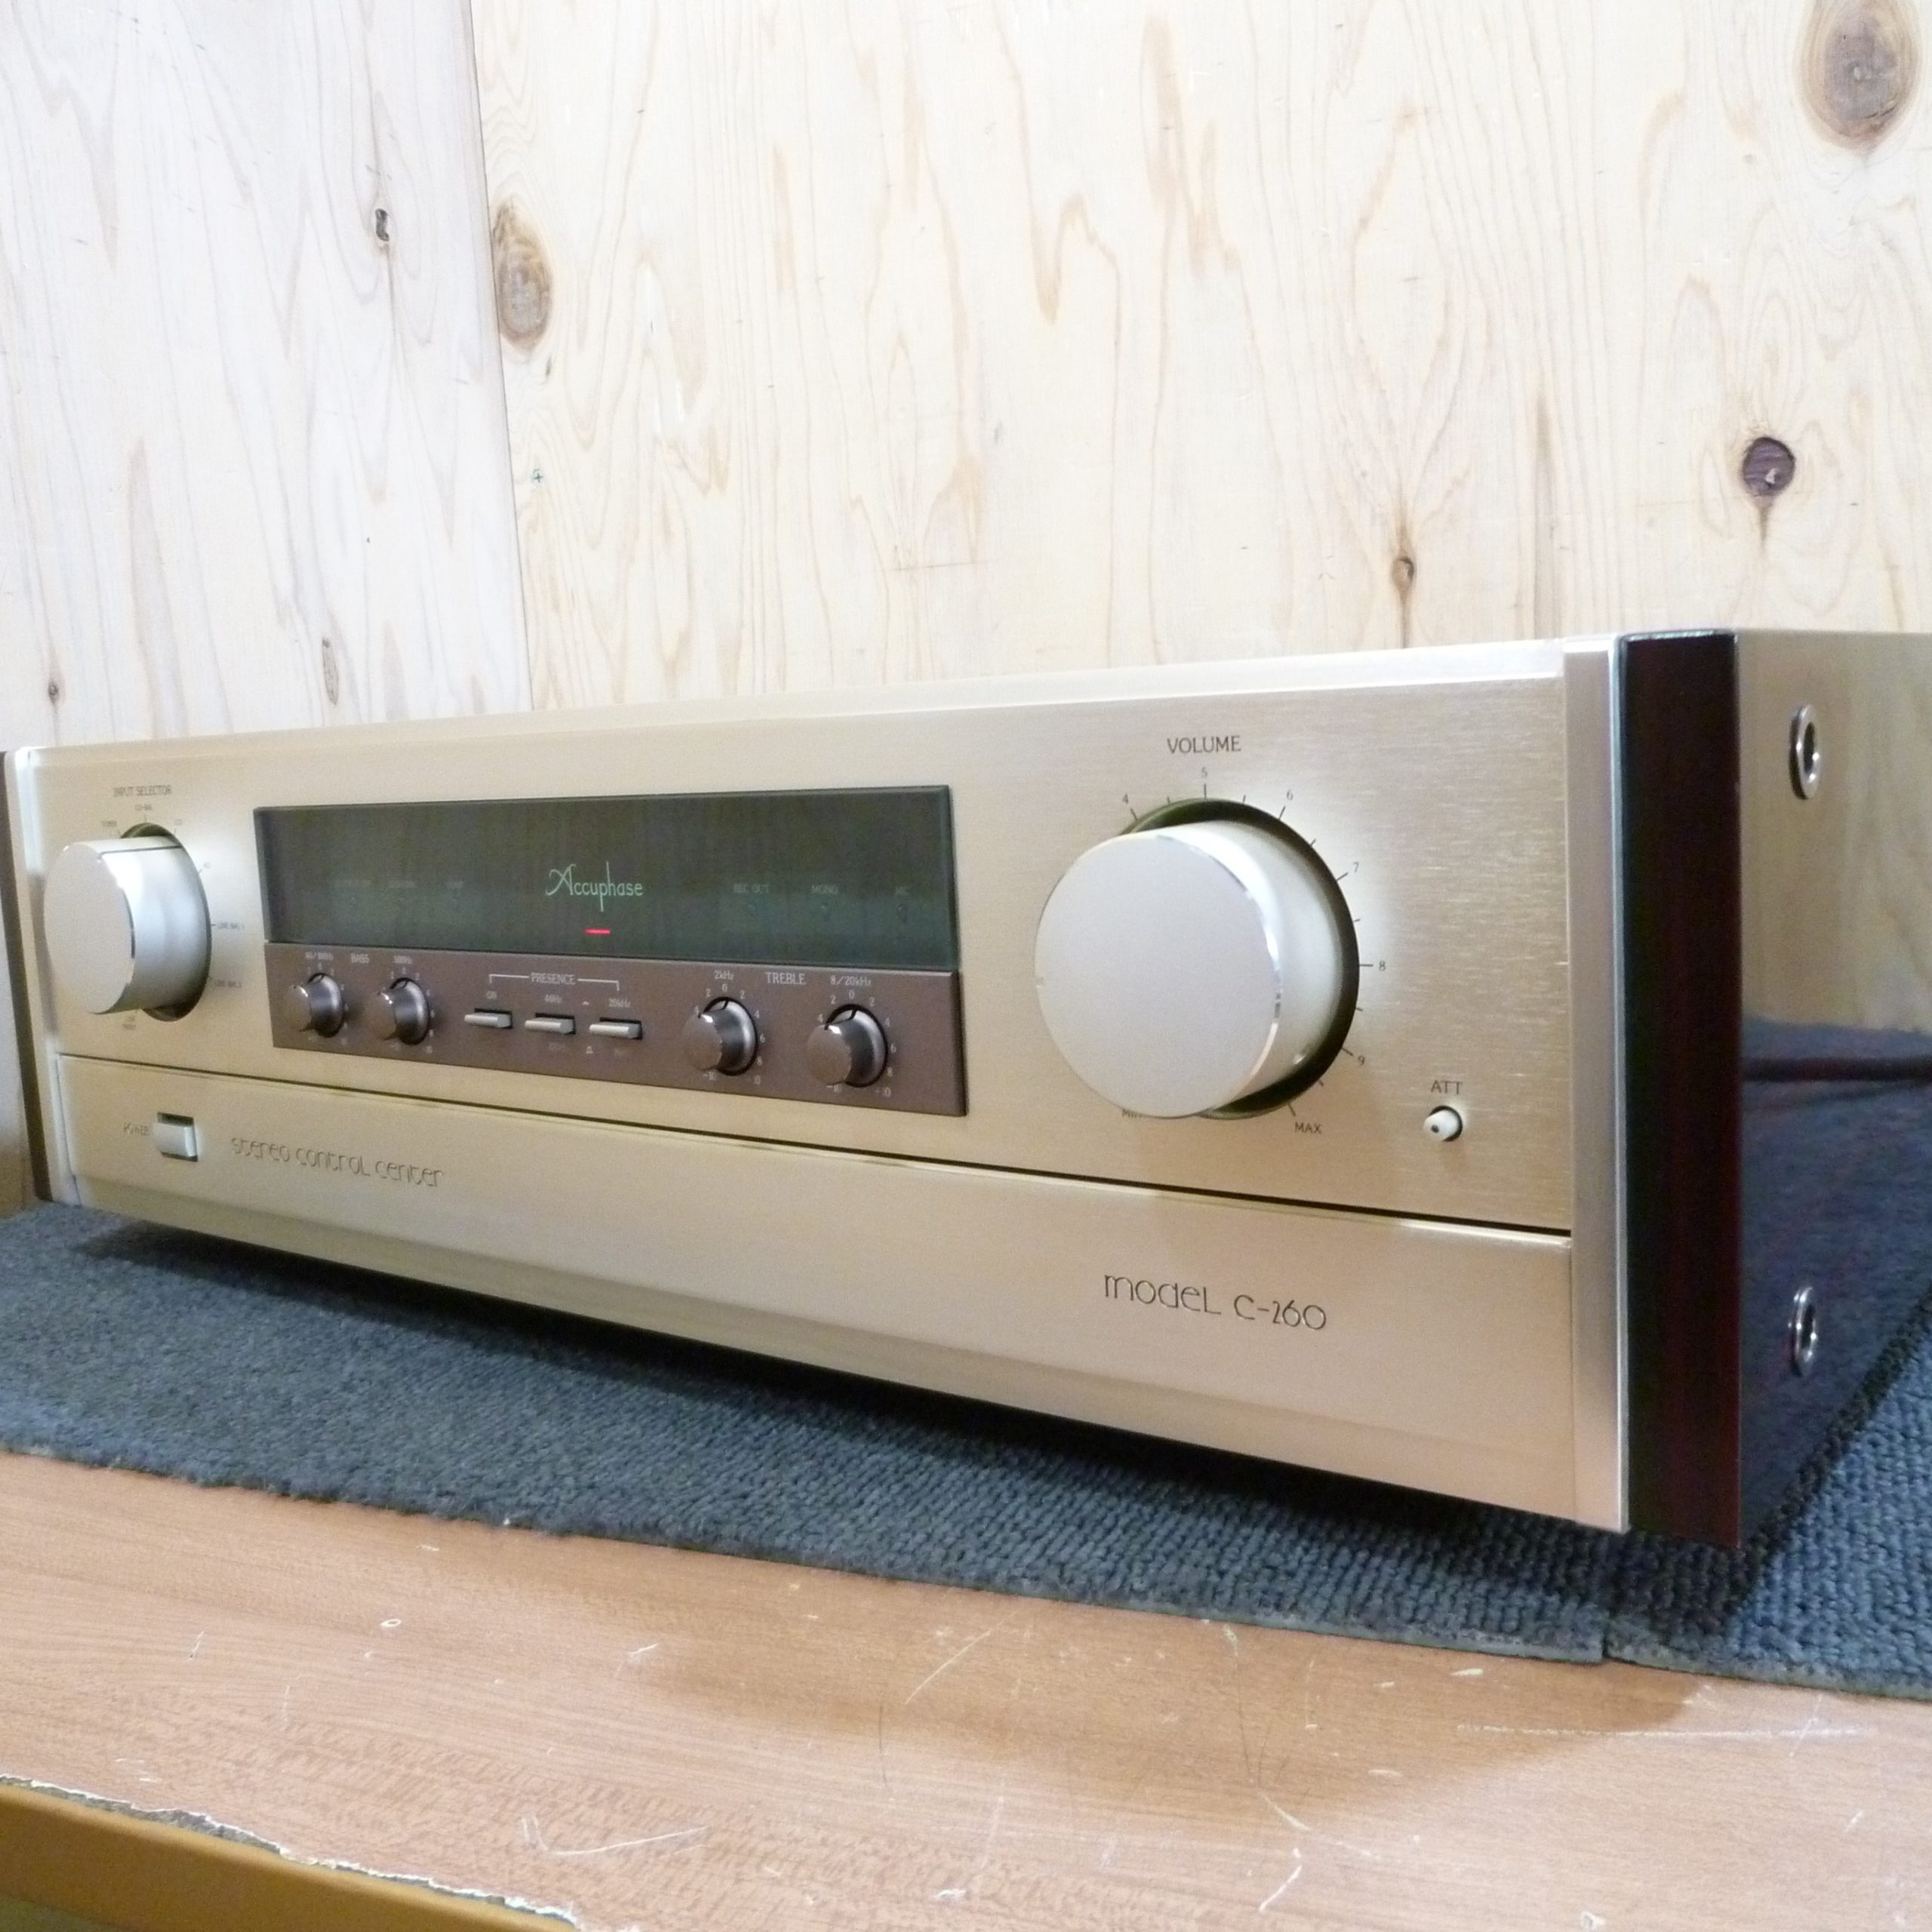 Accuphase / C-260